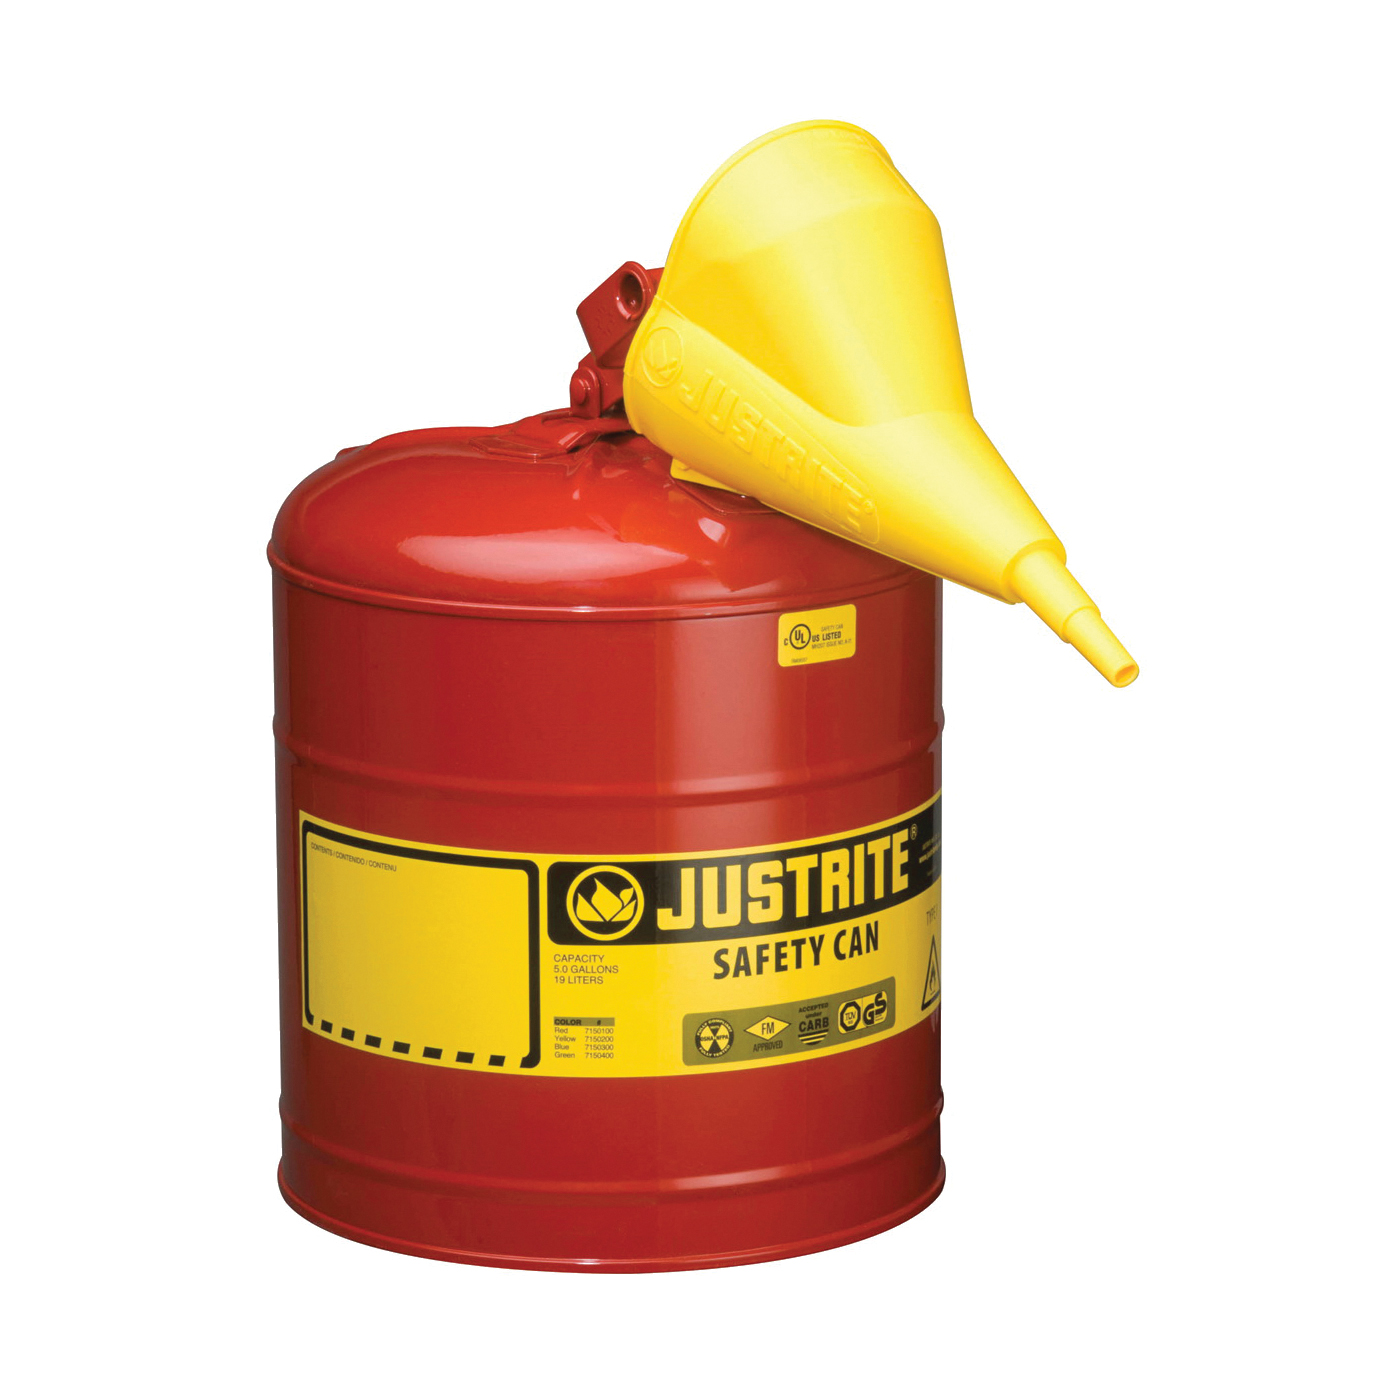 Picture of JUSTRITE 7150110 Safety Can, 5 gal Capacity, Steel, Red